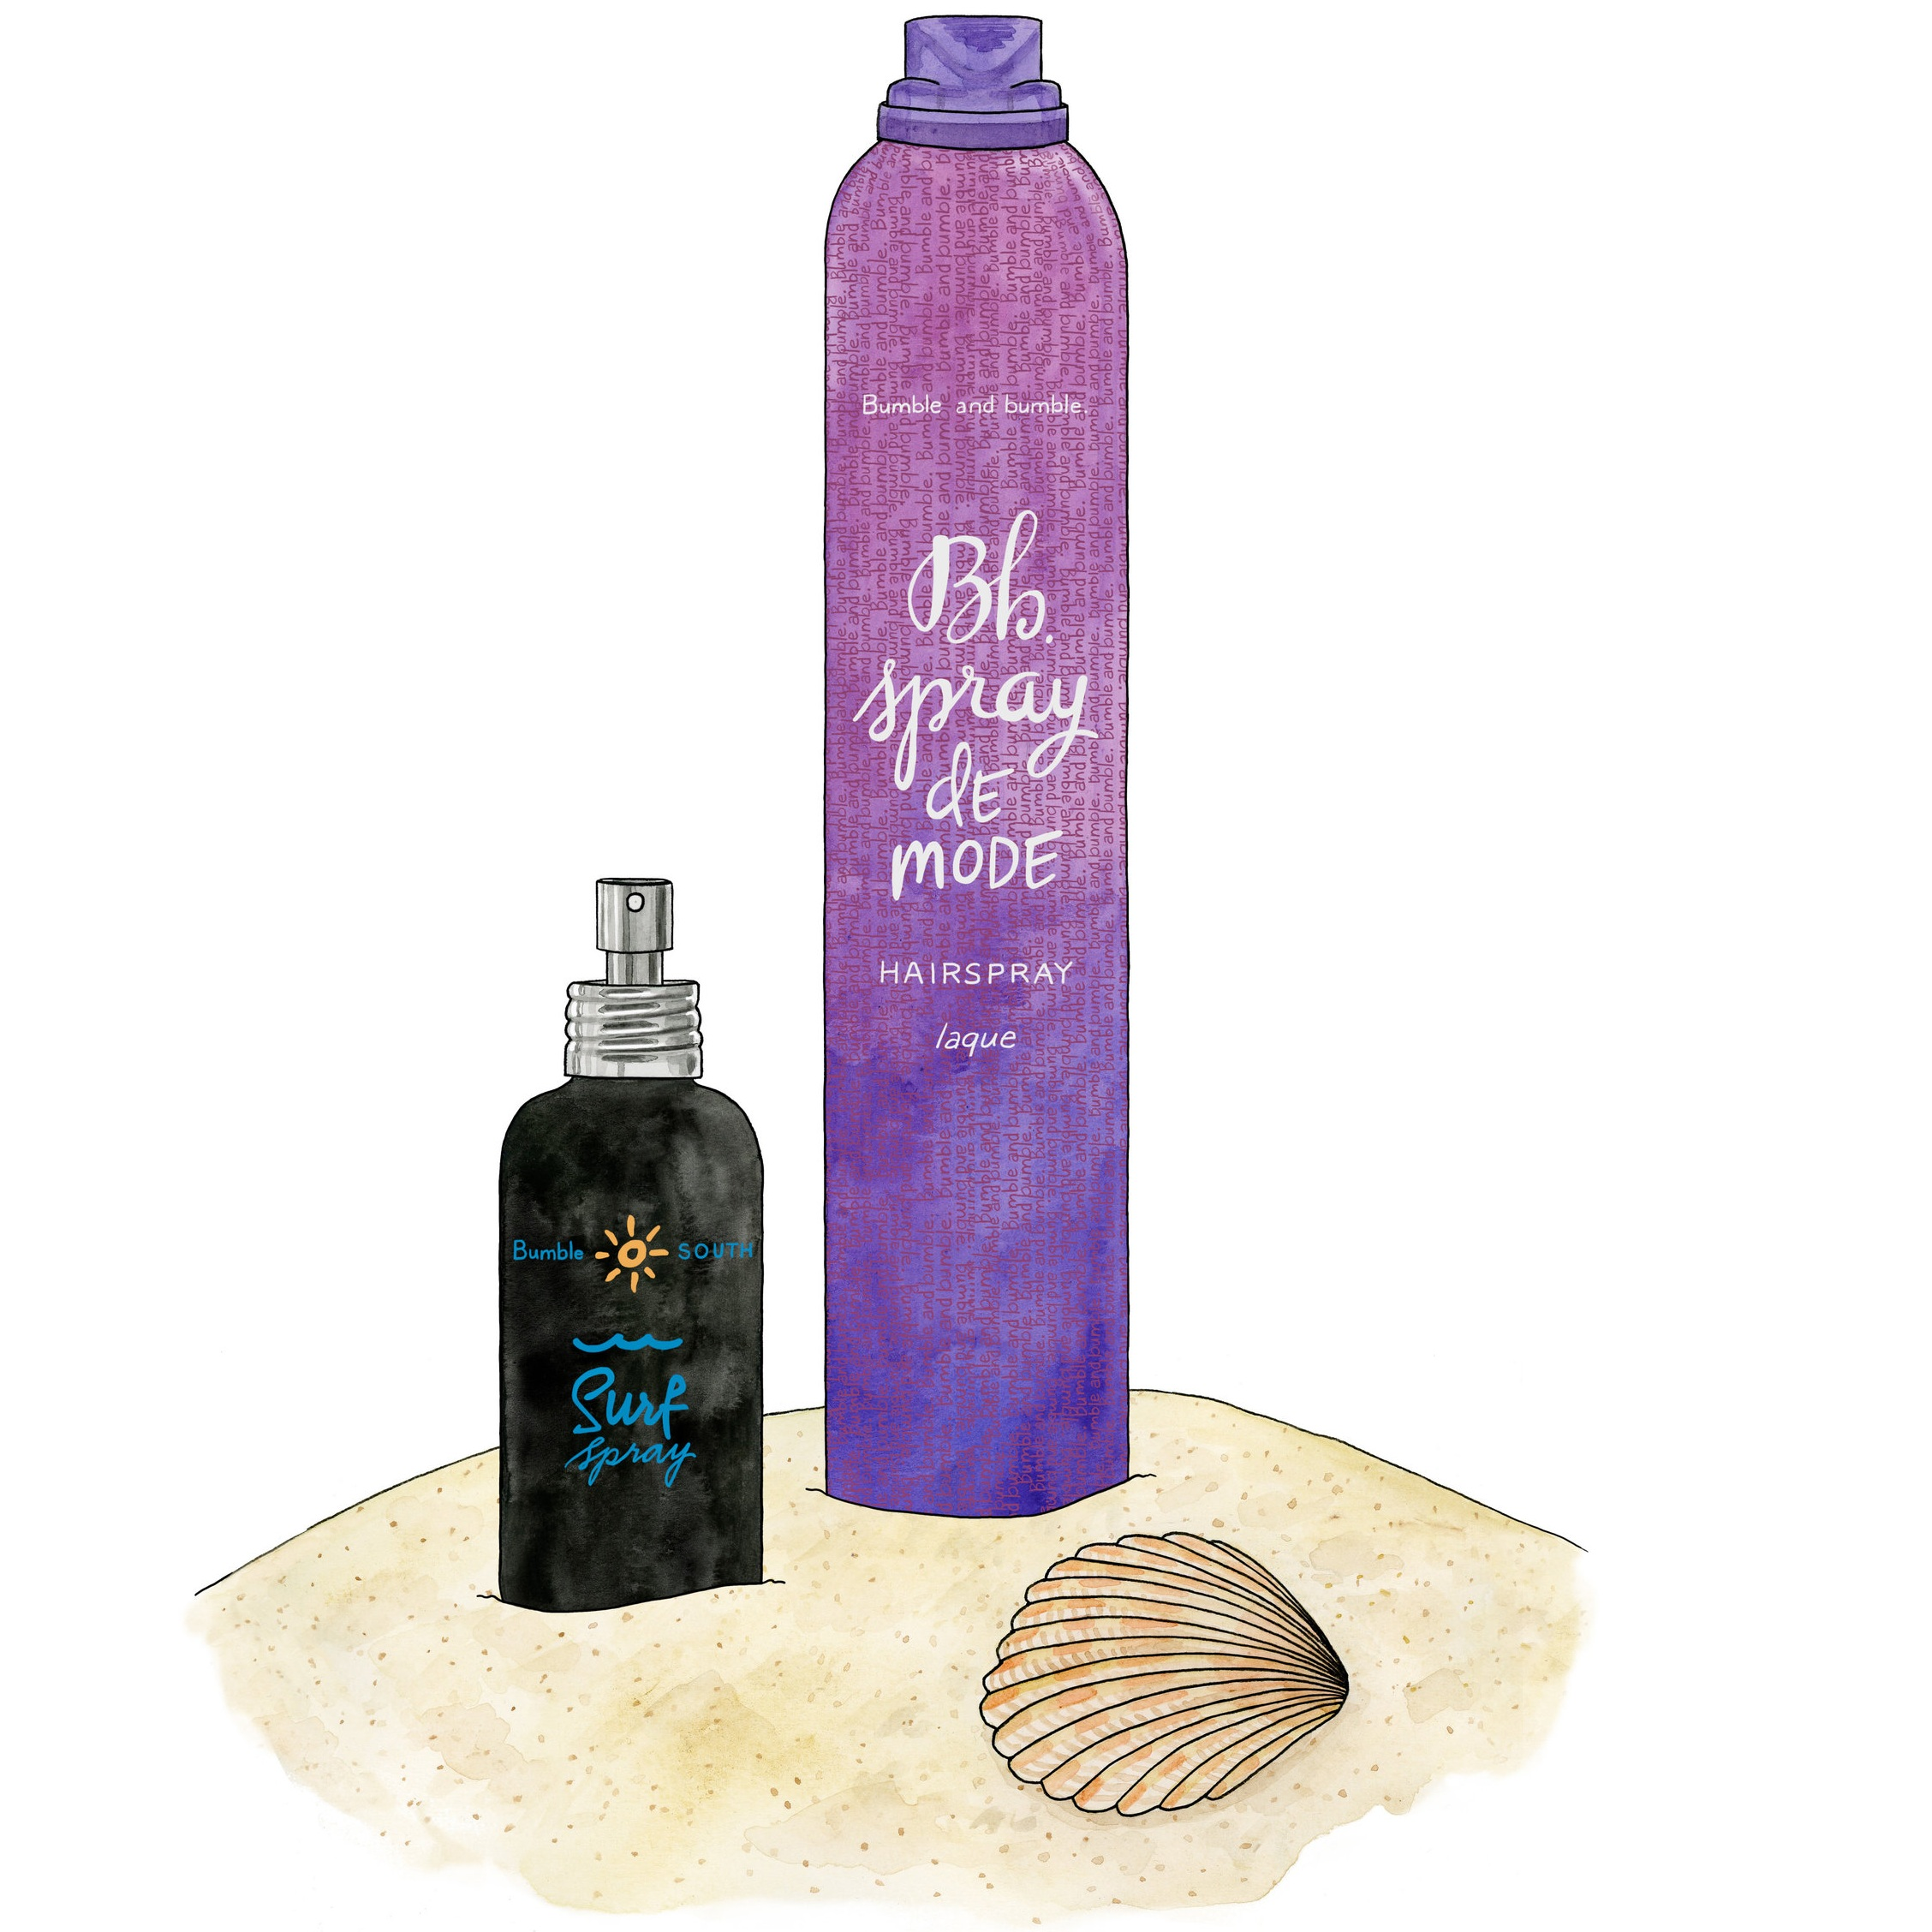 Bumble and bumble: Surf Spray 3